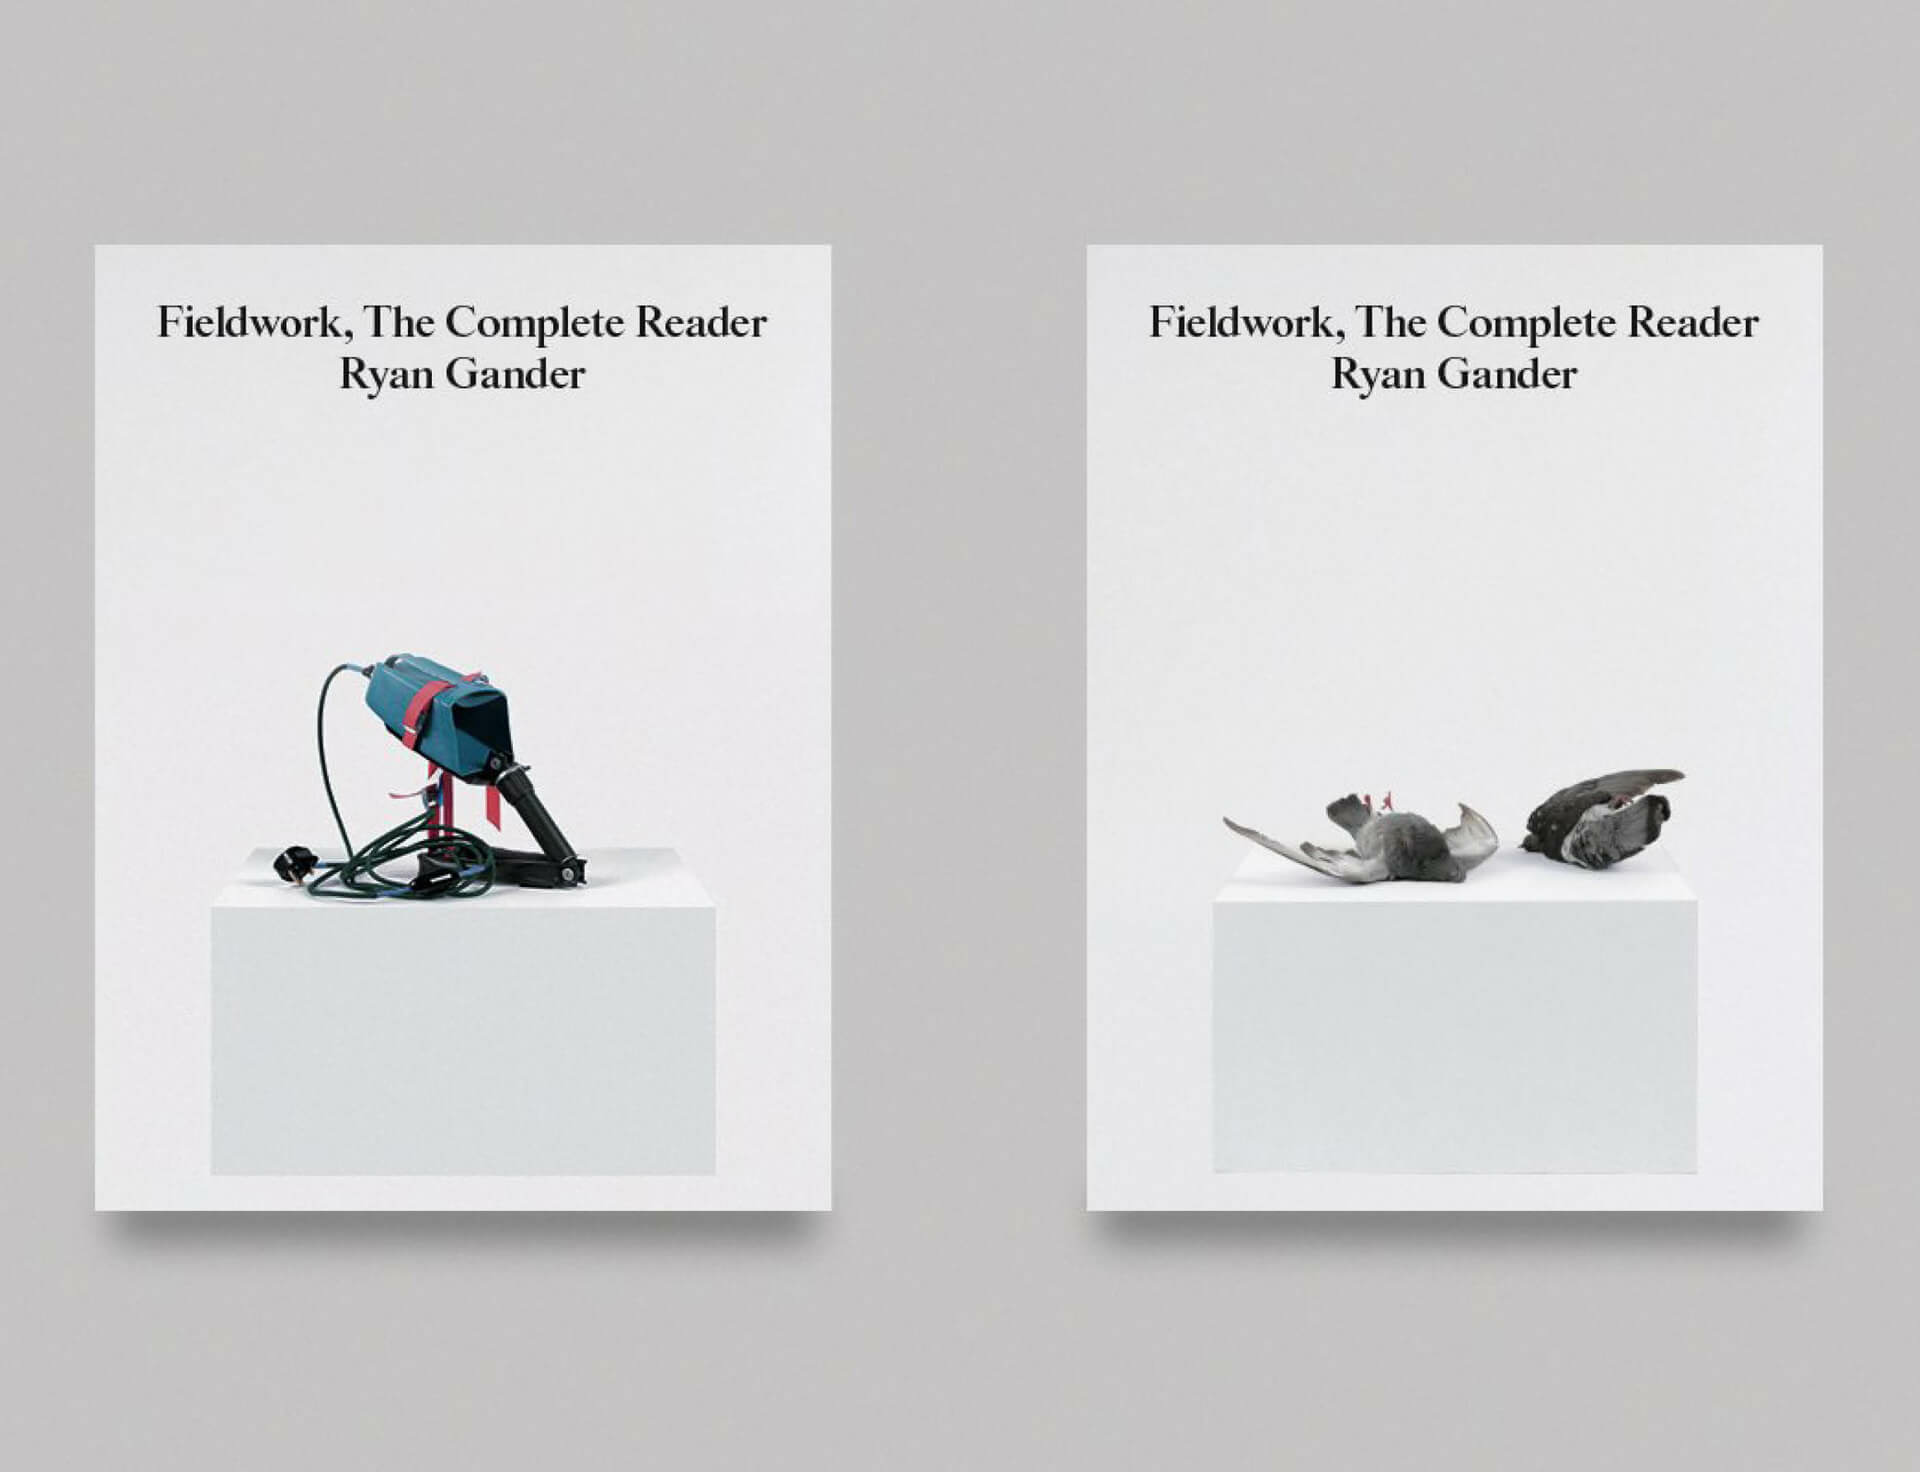 Ryan Gander's 'Fieldwork, The Complete Reader' launches on 3 November